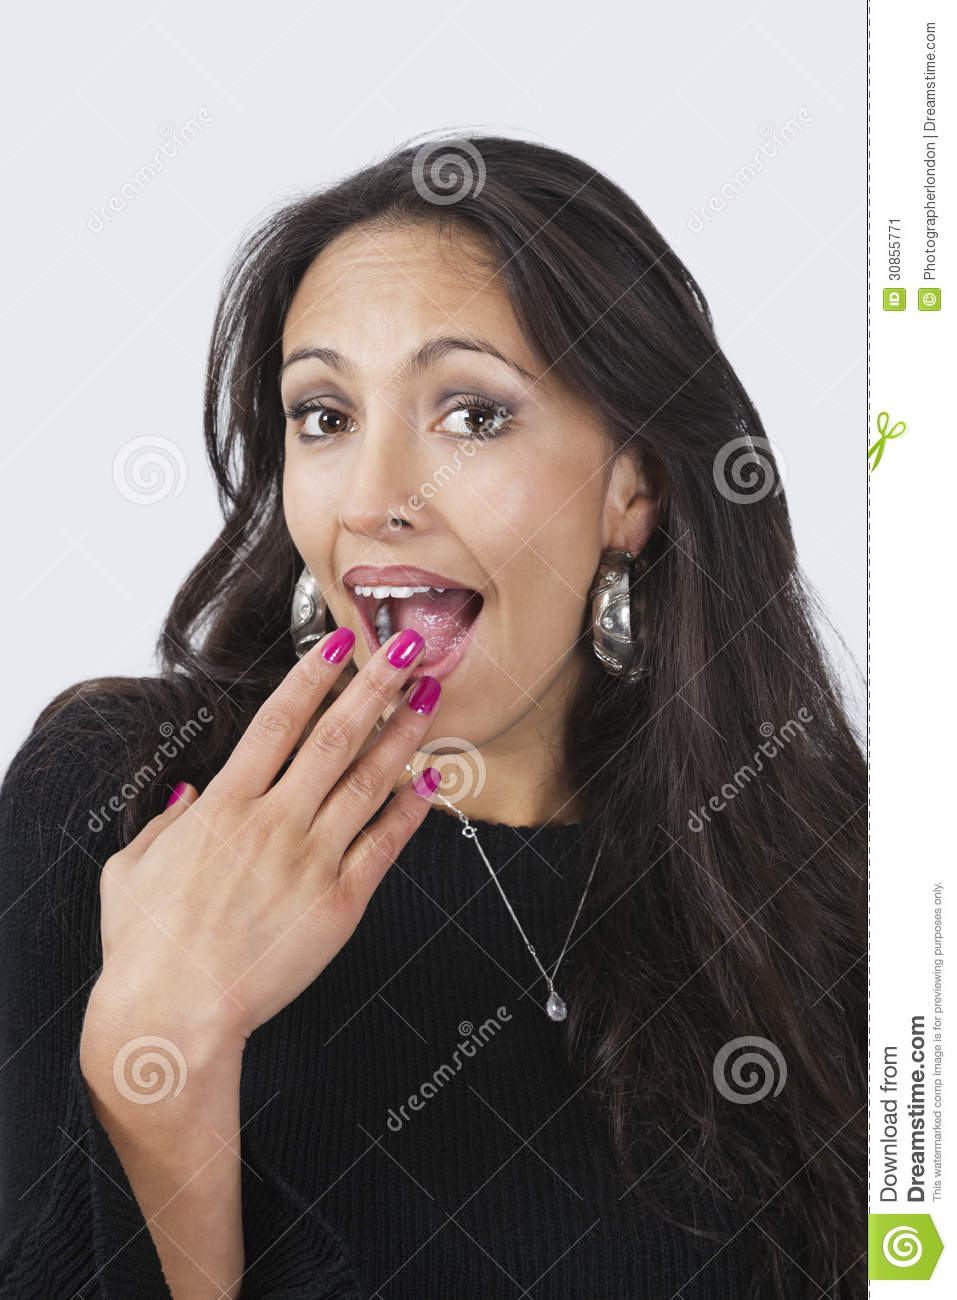 Download Portrait Of Surprised Happy Young Woman With Hand Over Mouth Against White Background Stock Image - Image of happiness, shot: 30855771